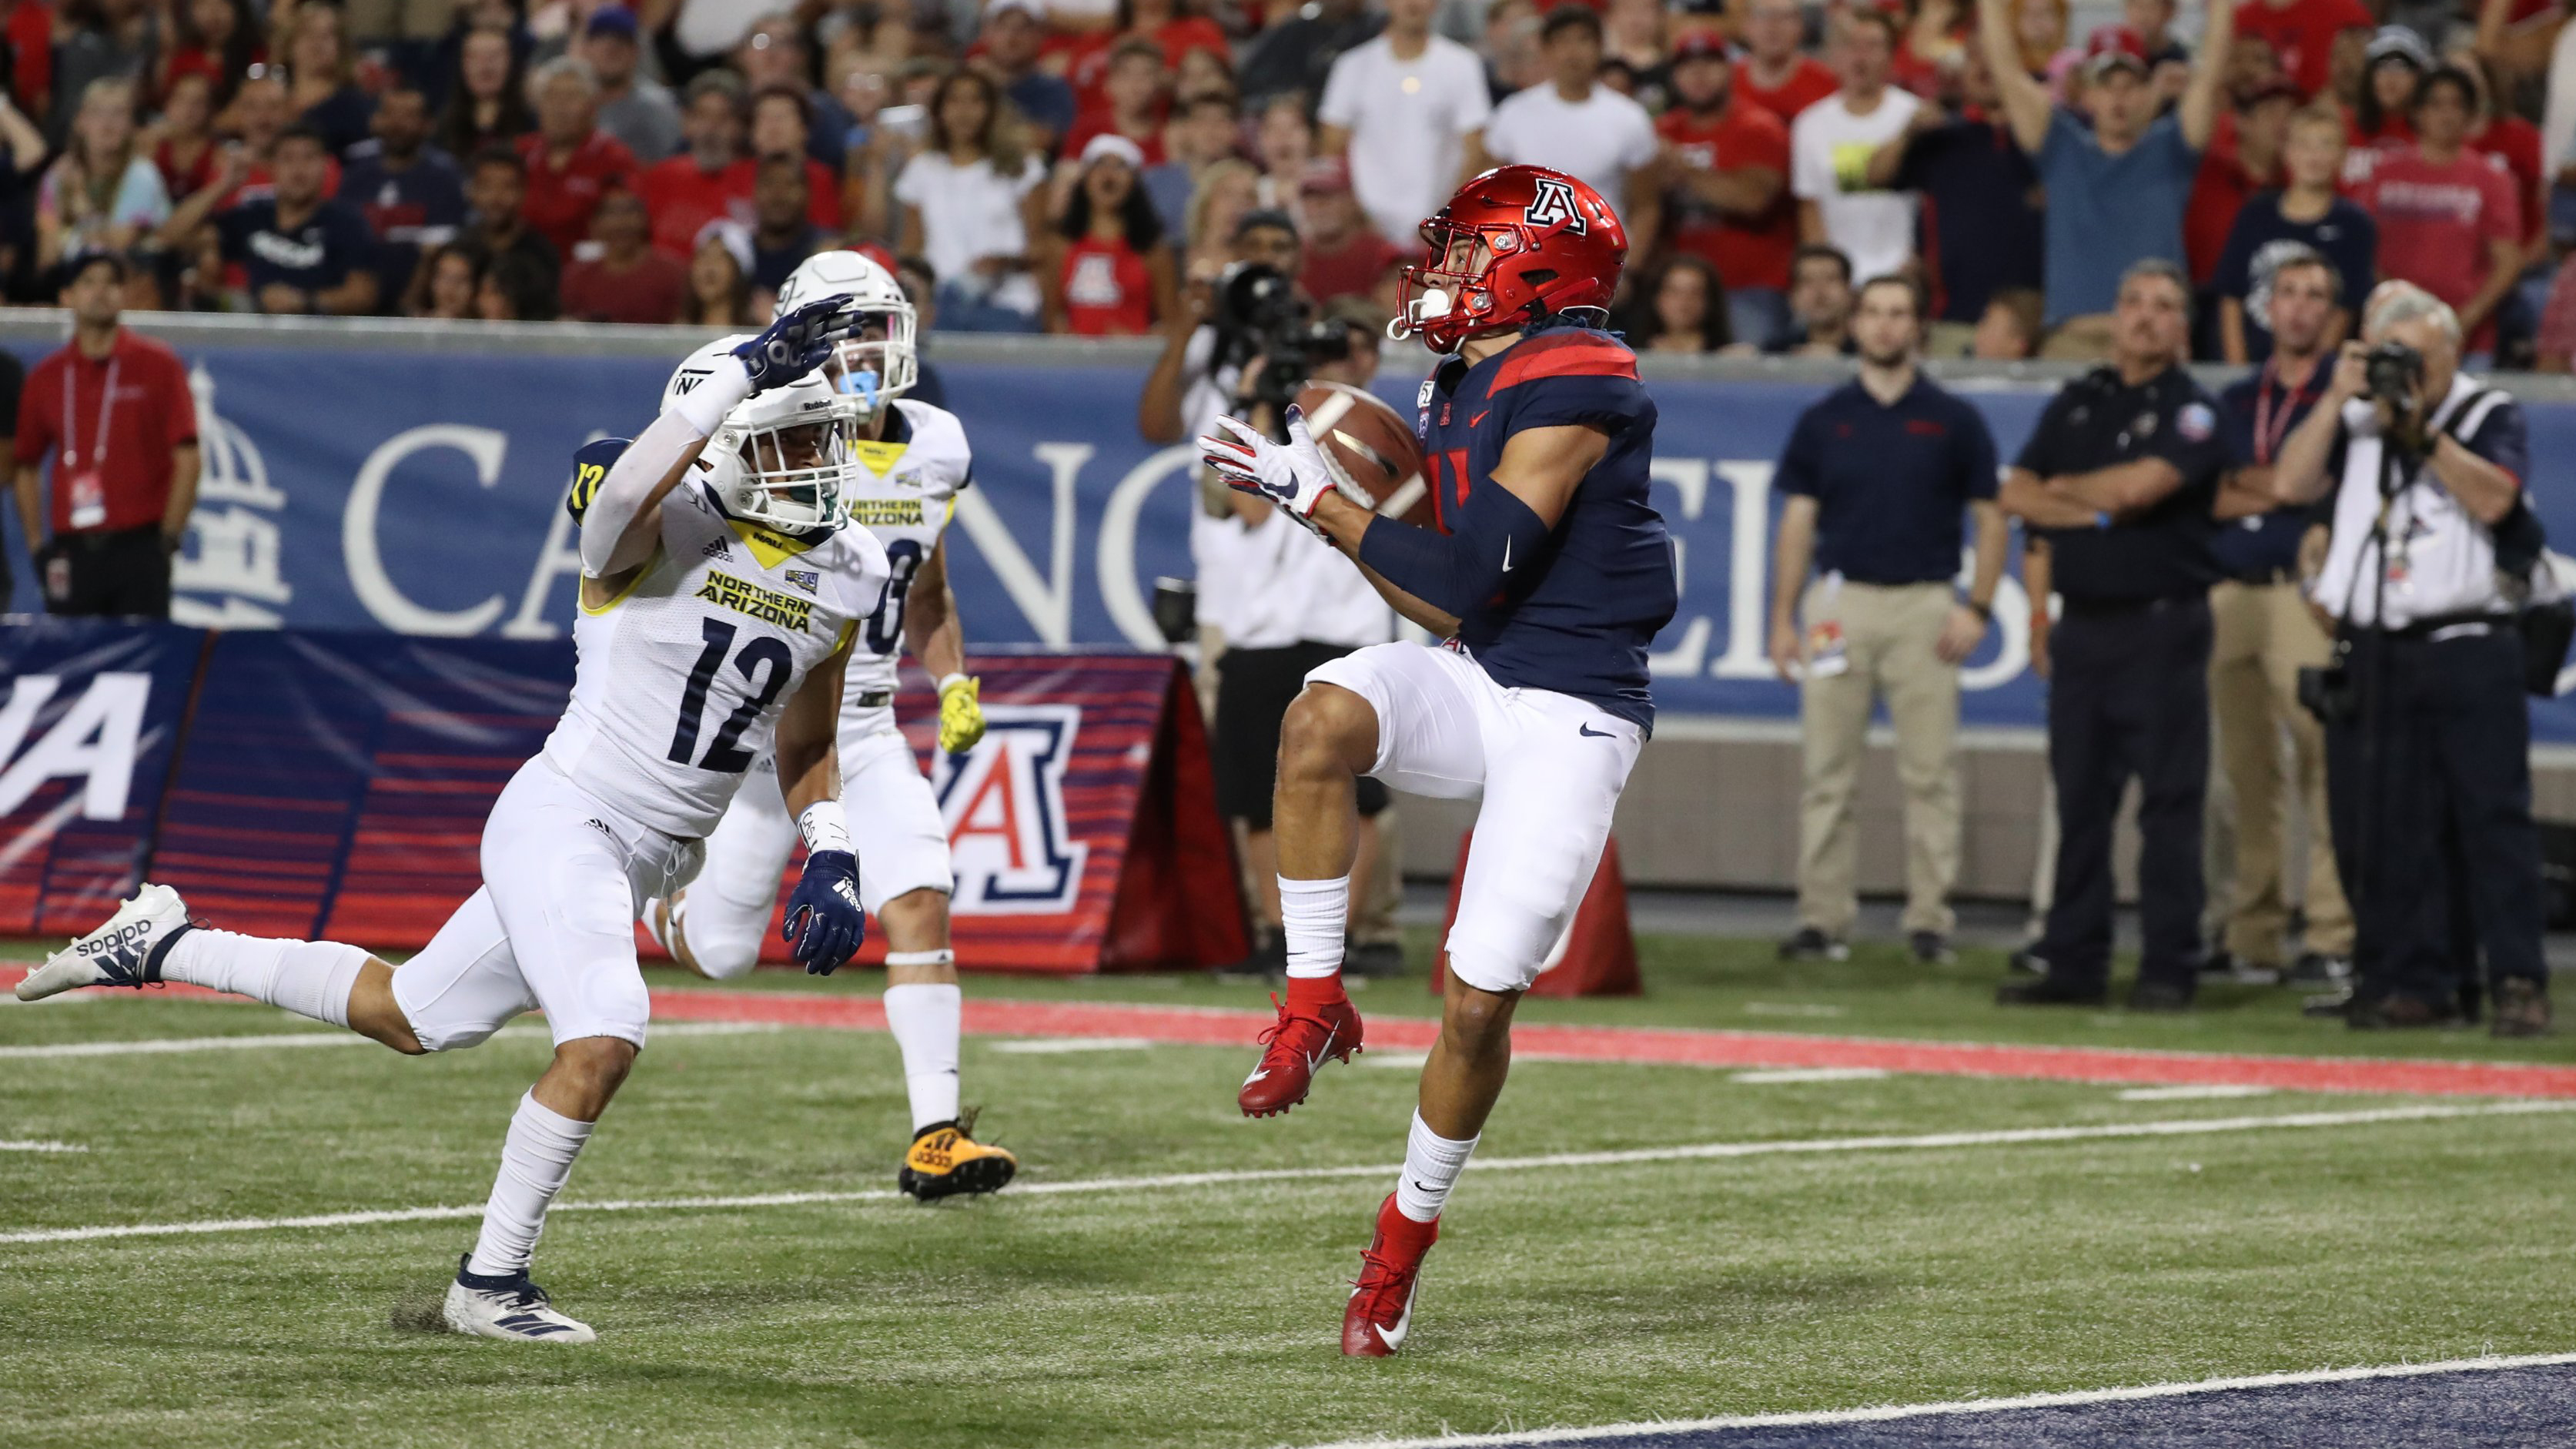 Uofa Football Score >> Northern Arizona Vs Arizona Wildcats Football September 7